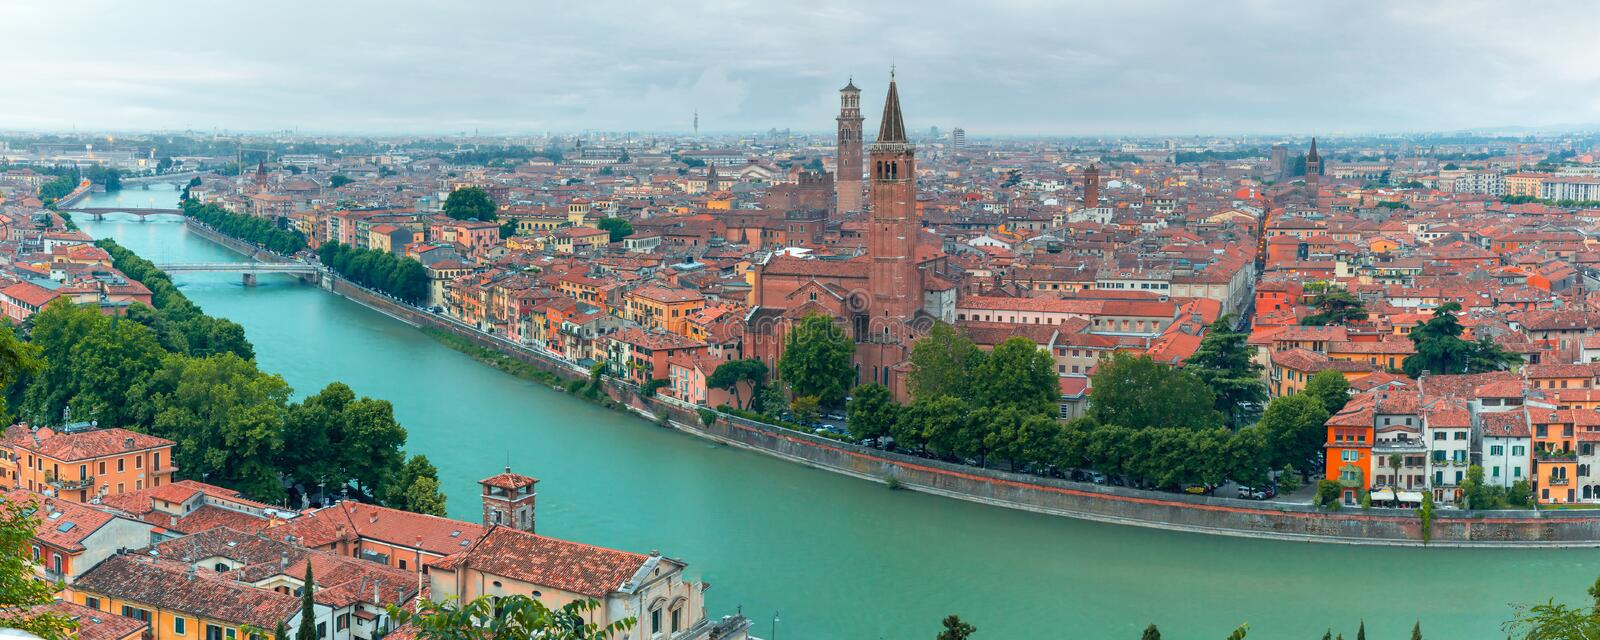 Panorama of Verona skyline at night, Italy stock images